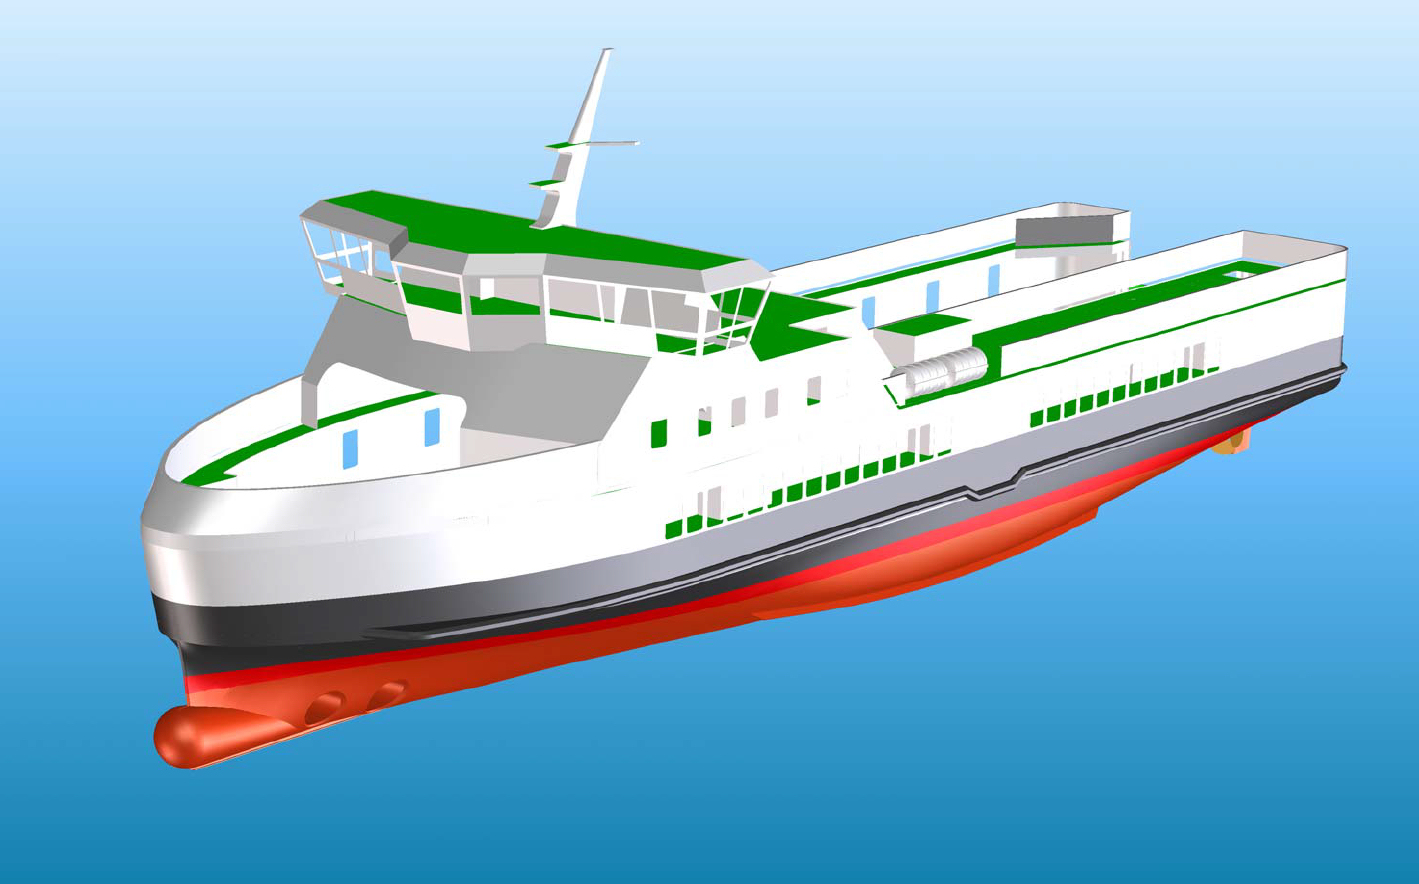 E-ferry with batteries